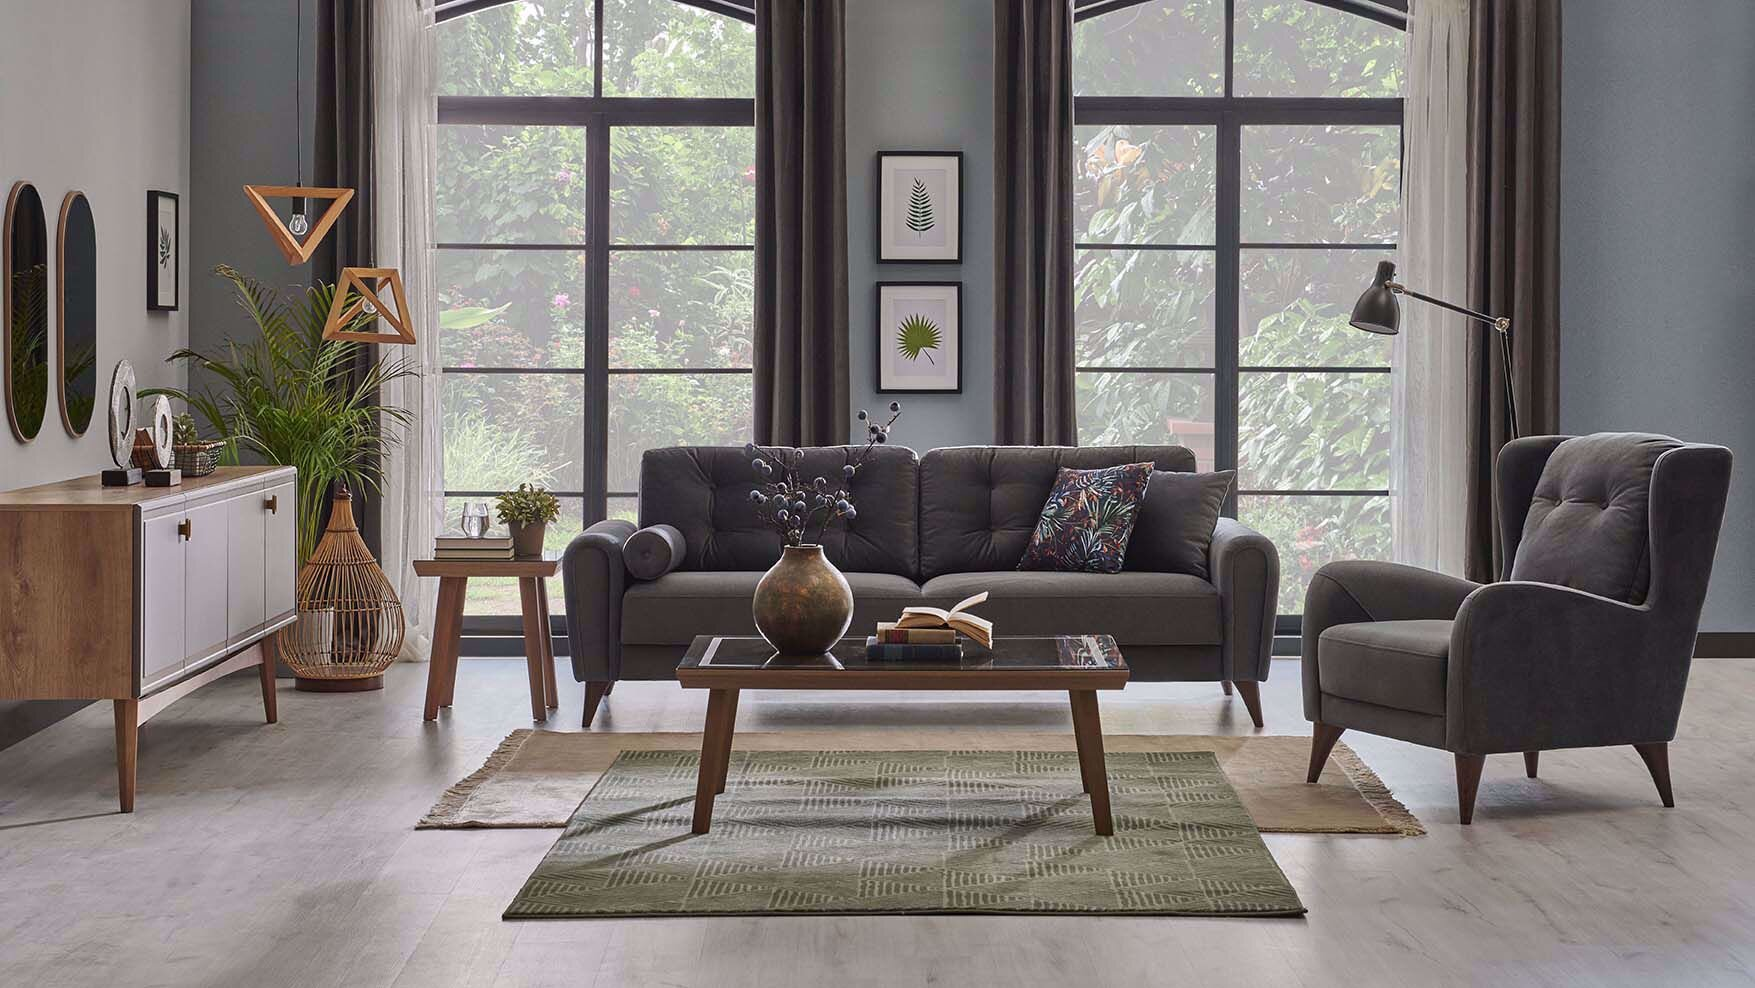 Valen Three-Seat Sofa (Doubles as Bed)